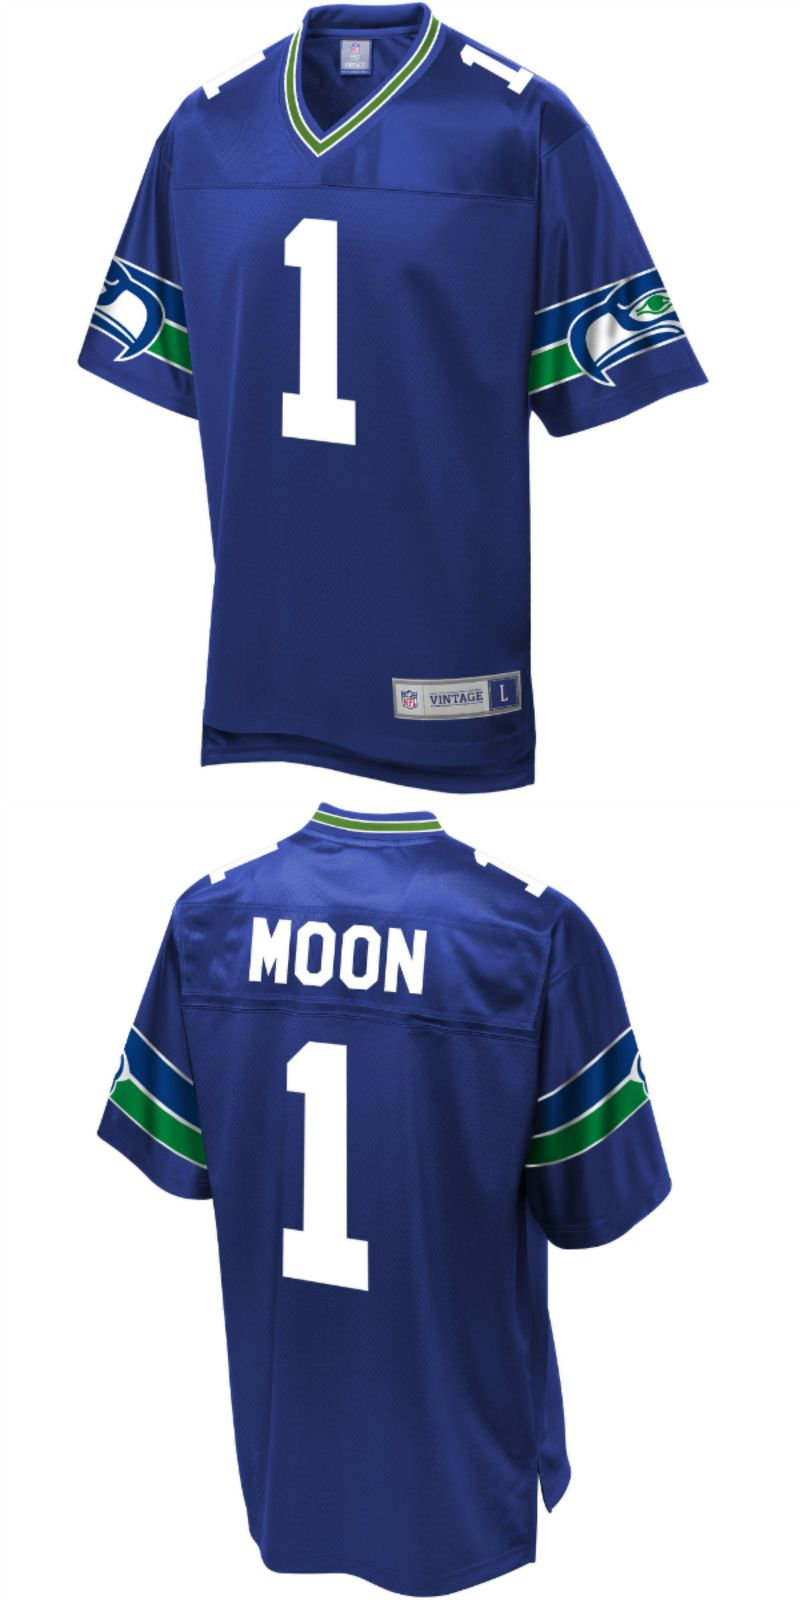 69863644 UP TO 70% OFF. Warren Moon Seattle Seahawks NFL Pro Line Retired ...